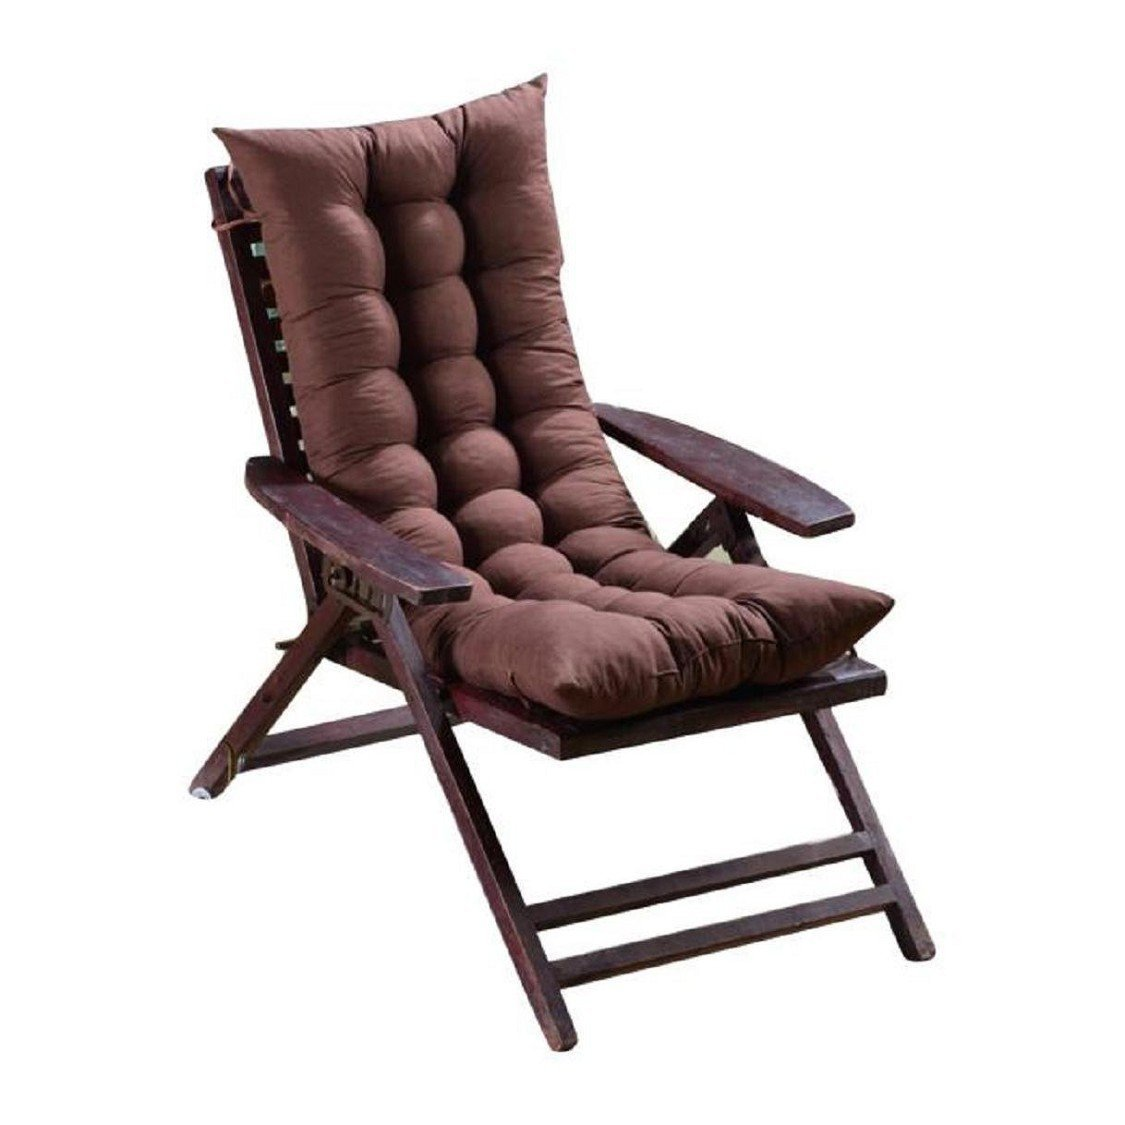 Most comfortable living room chair home furniture design - Most comfortable living room chairs ...